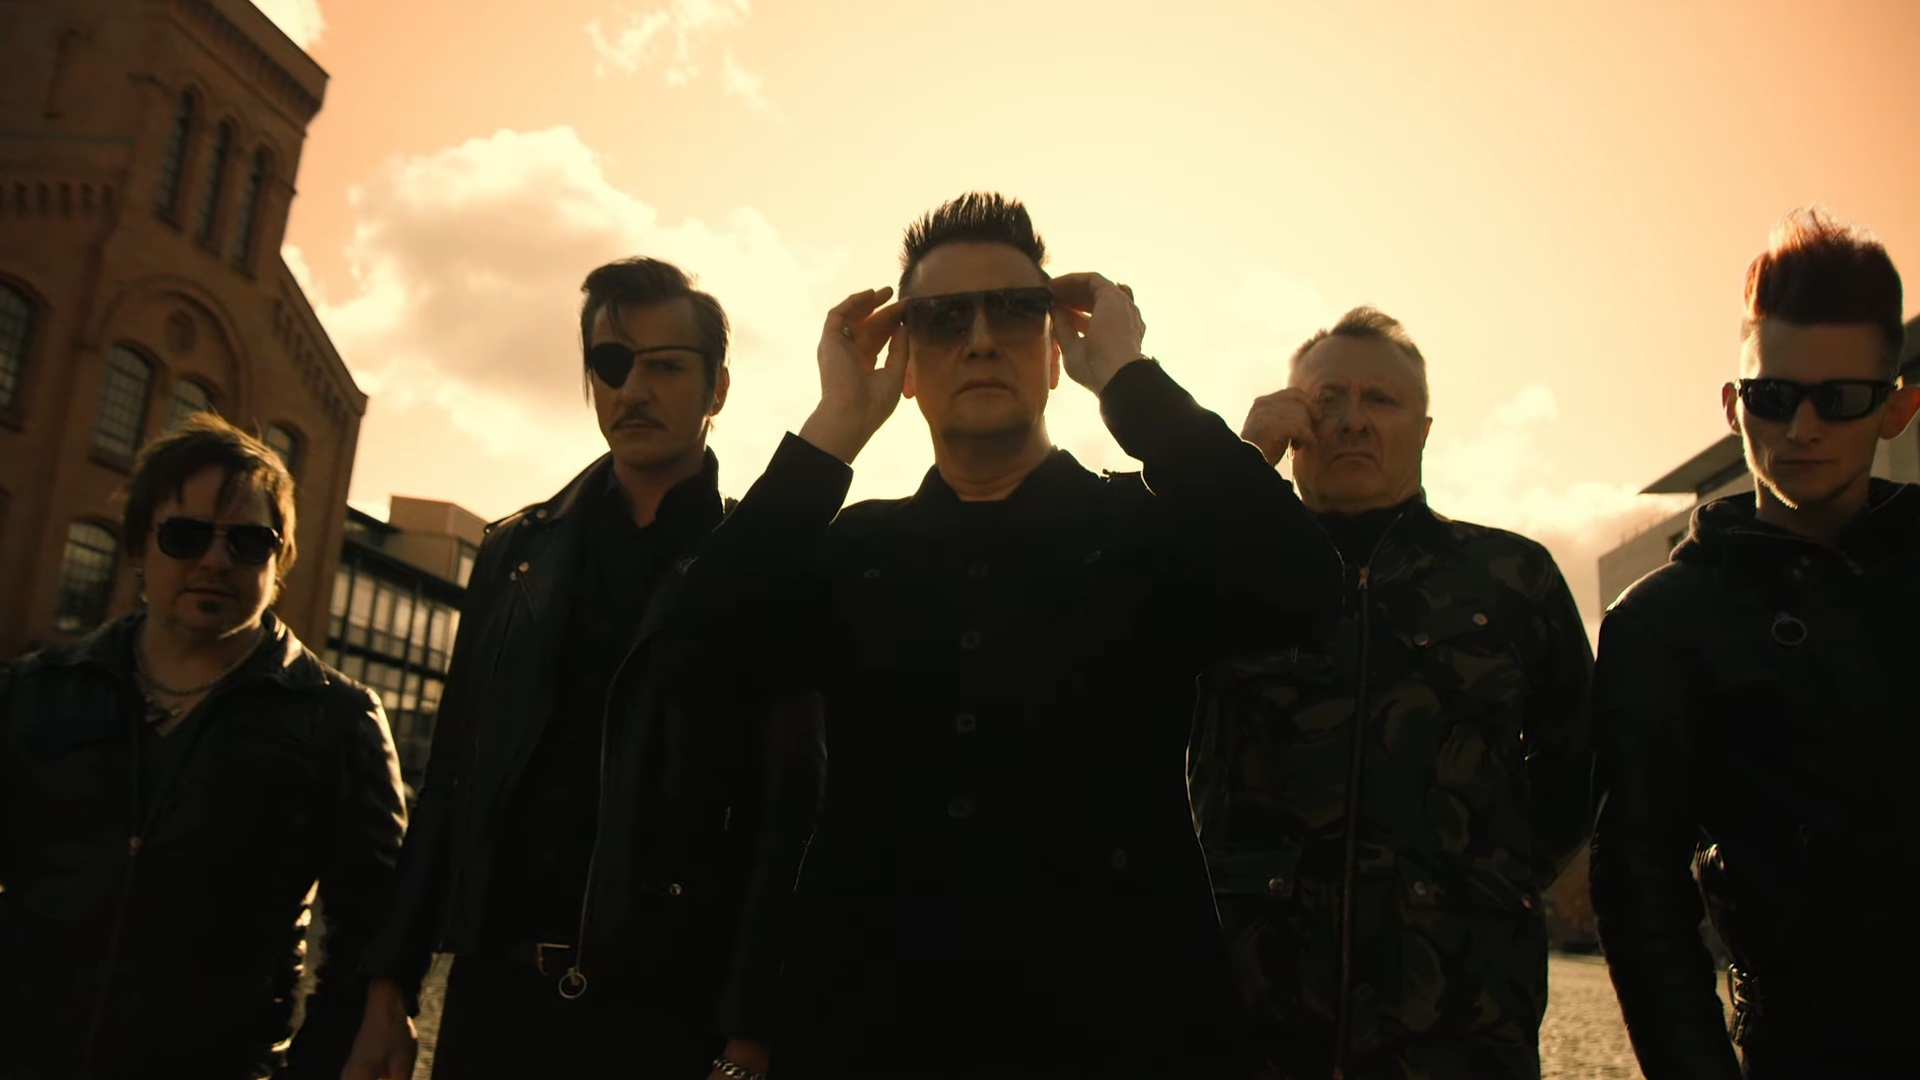 Die Krupps 2020 Vision 2020 Video Homepage